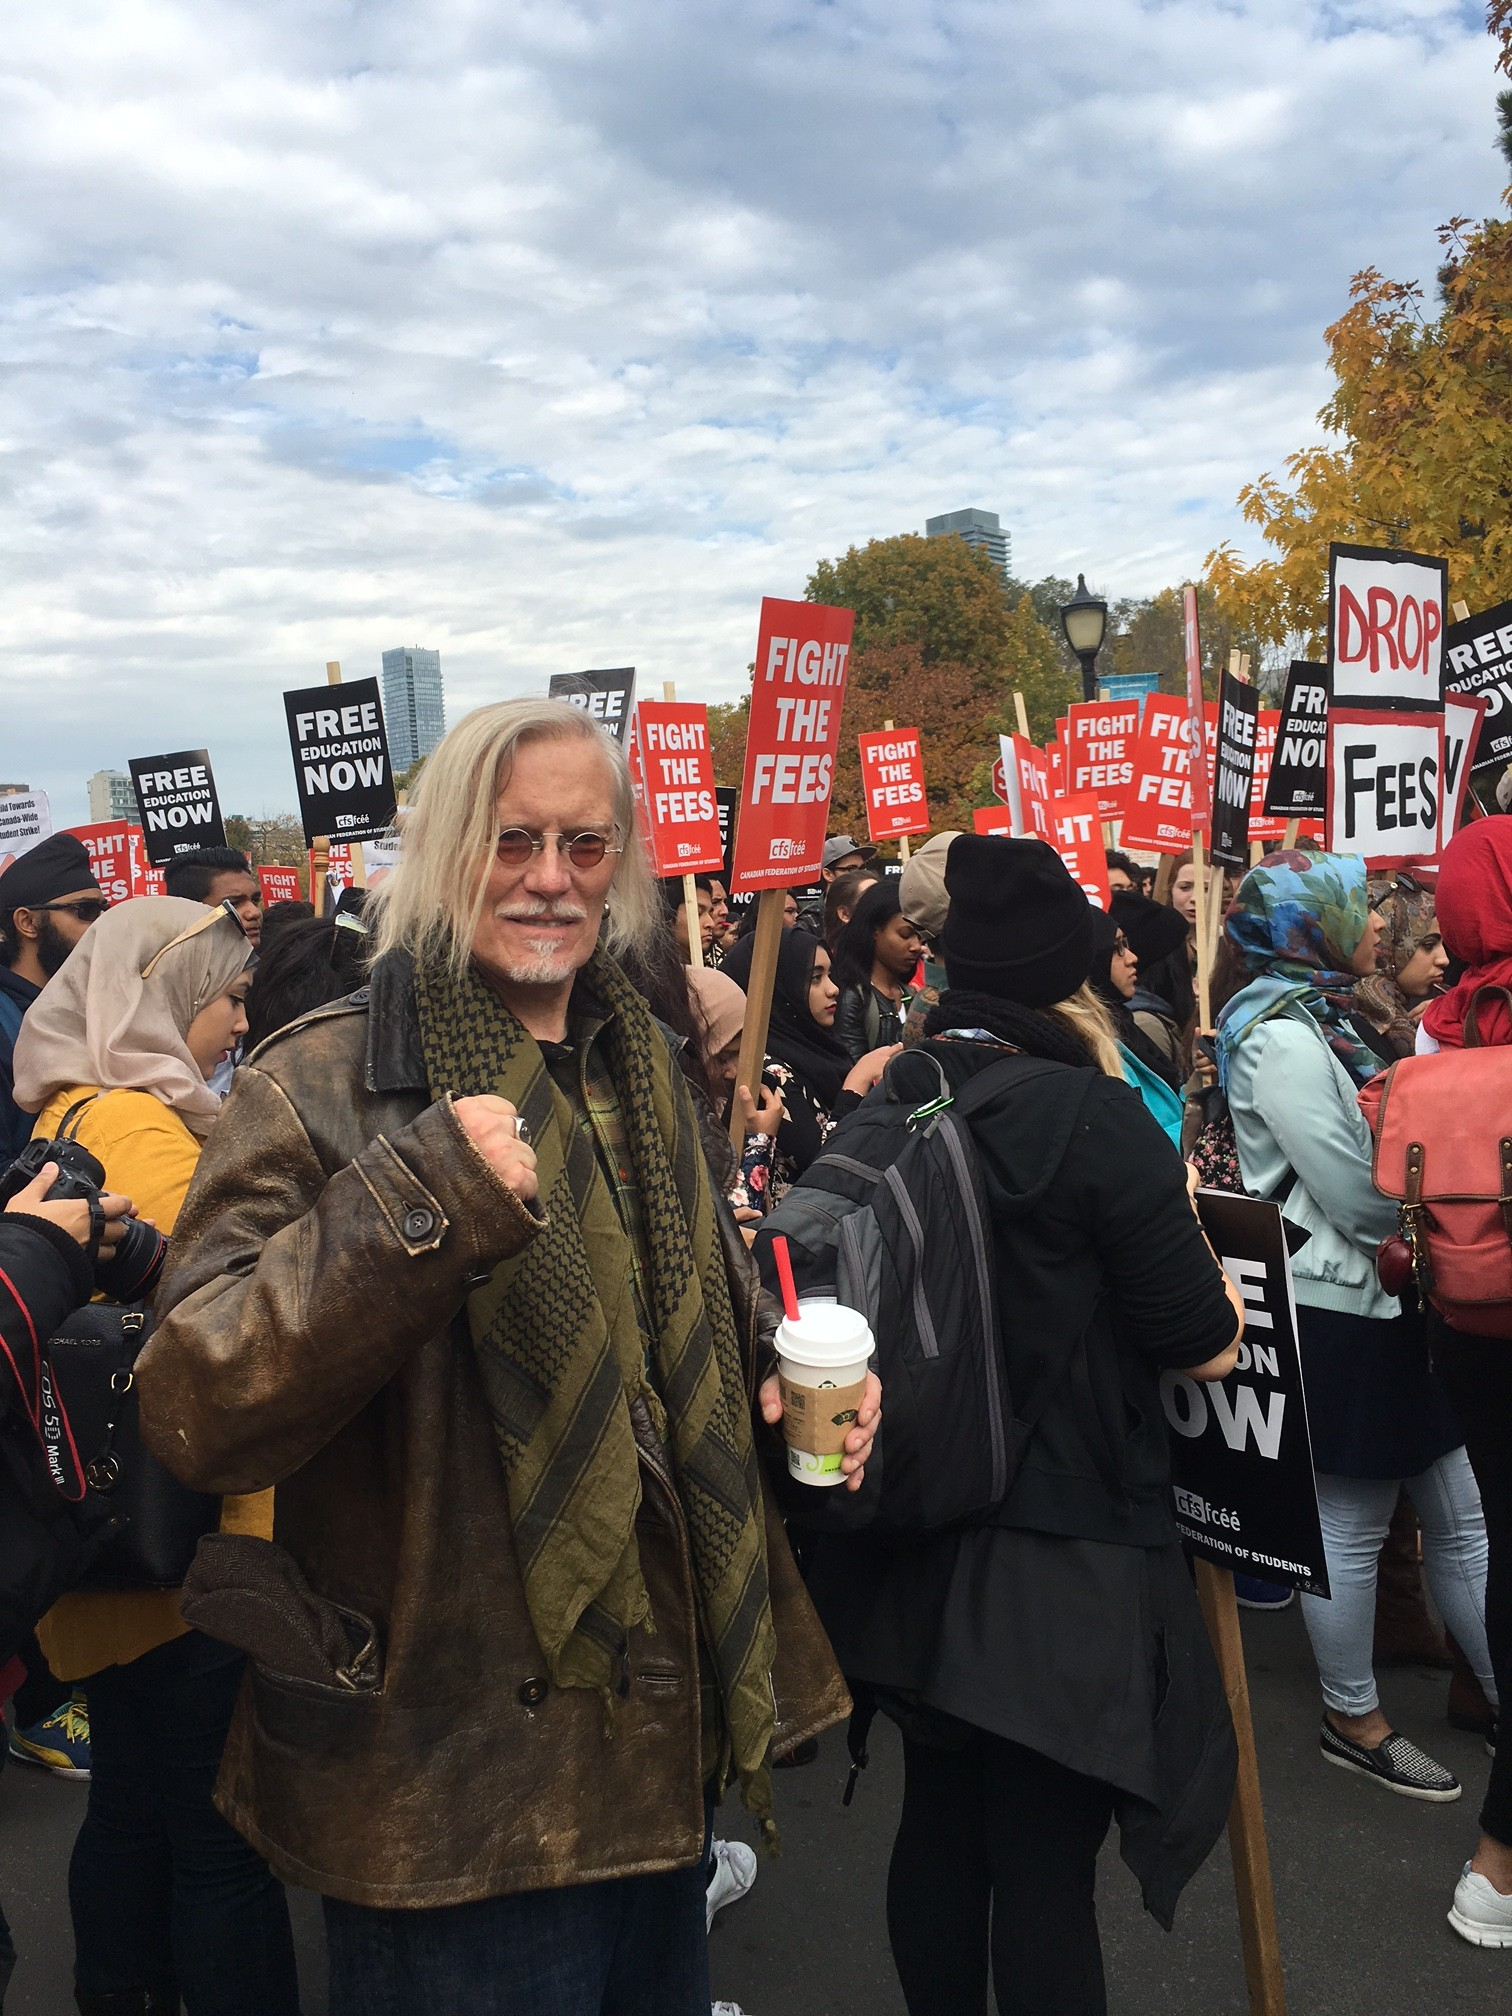 Peter Protesting with students at University of Toronto